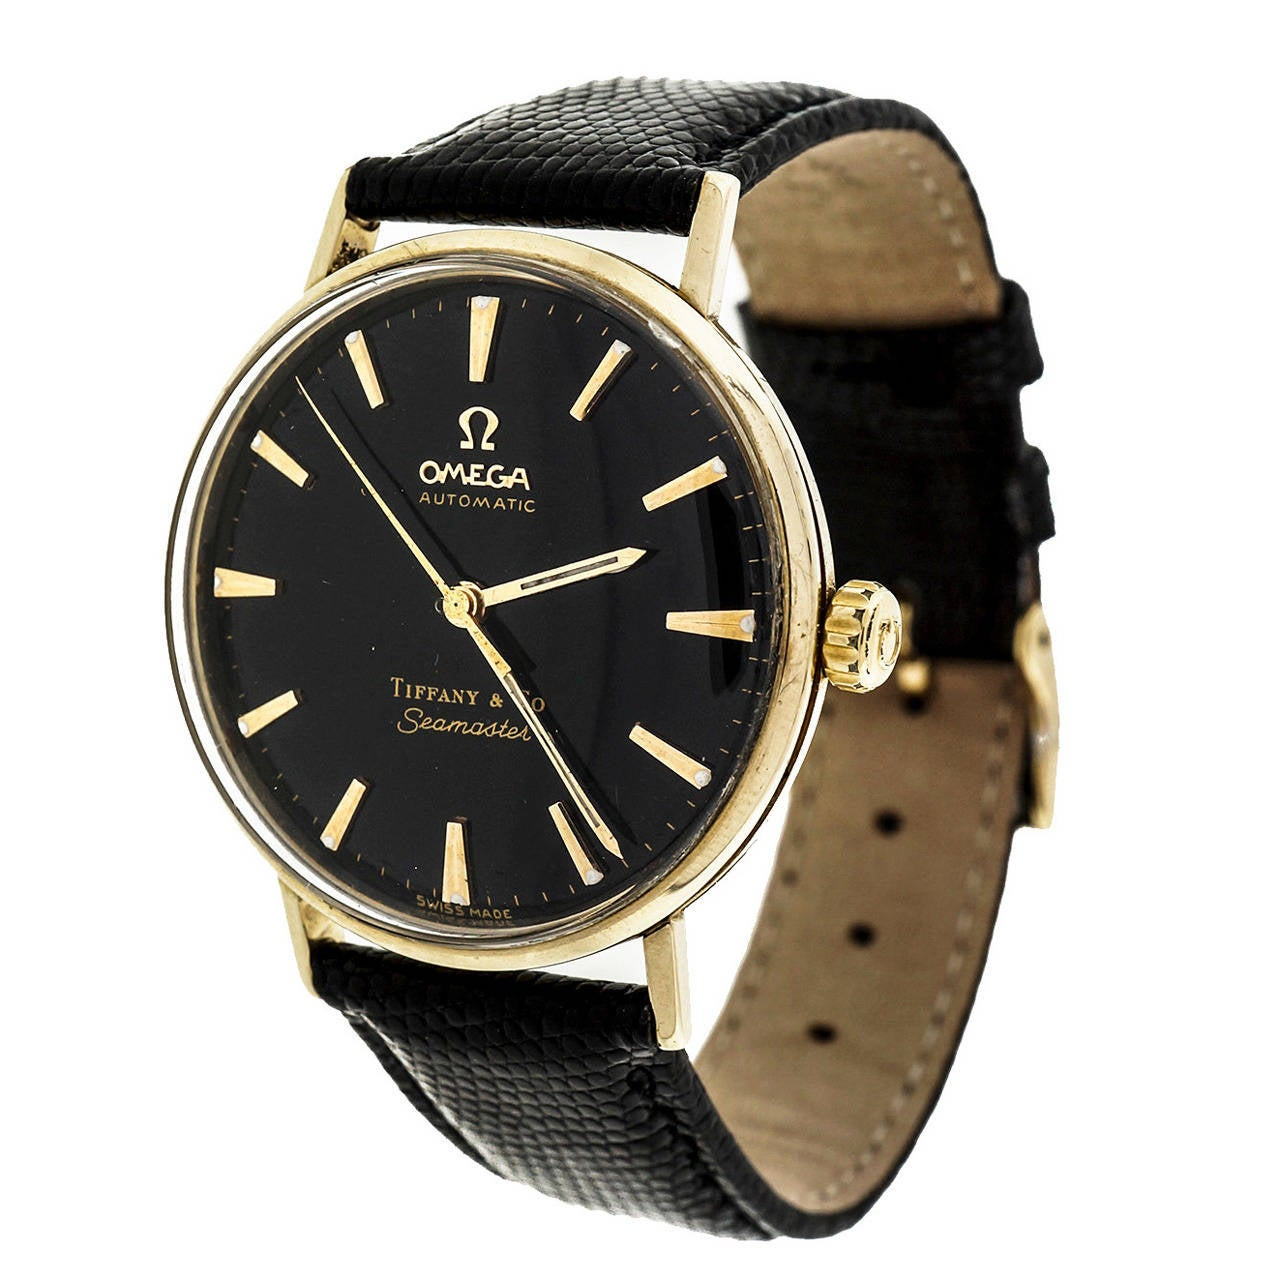 Omega Yellow Gold Seamaster Wristwatch Retailed by Tiffany & Co circa 1960s